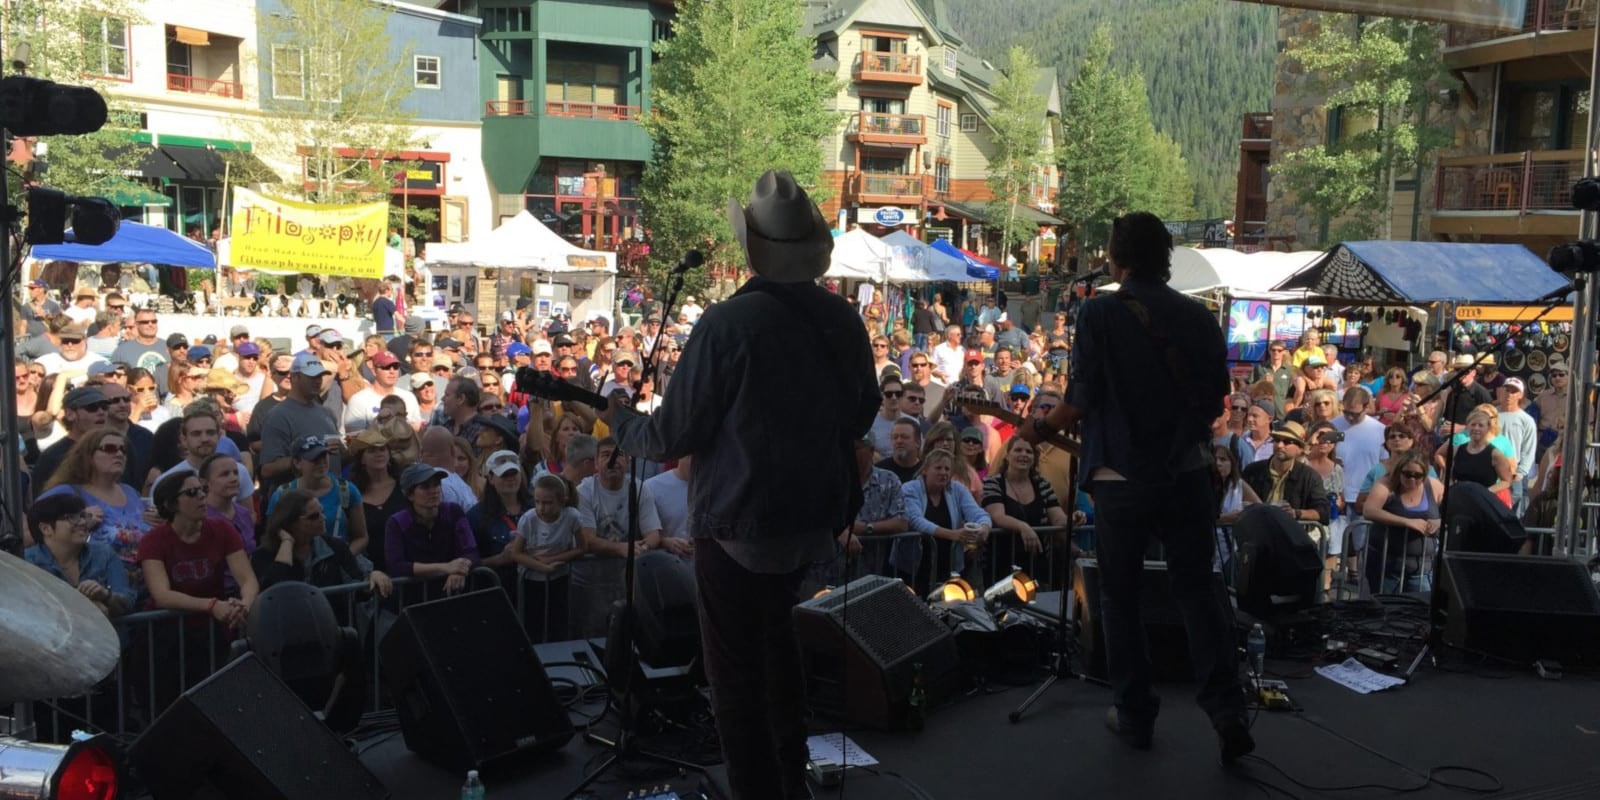 Mountain Town Music Festival Keystone Concert Stage